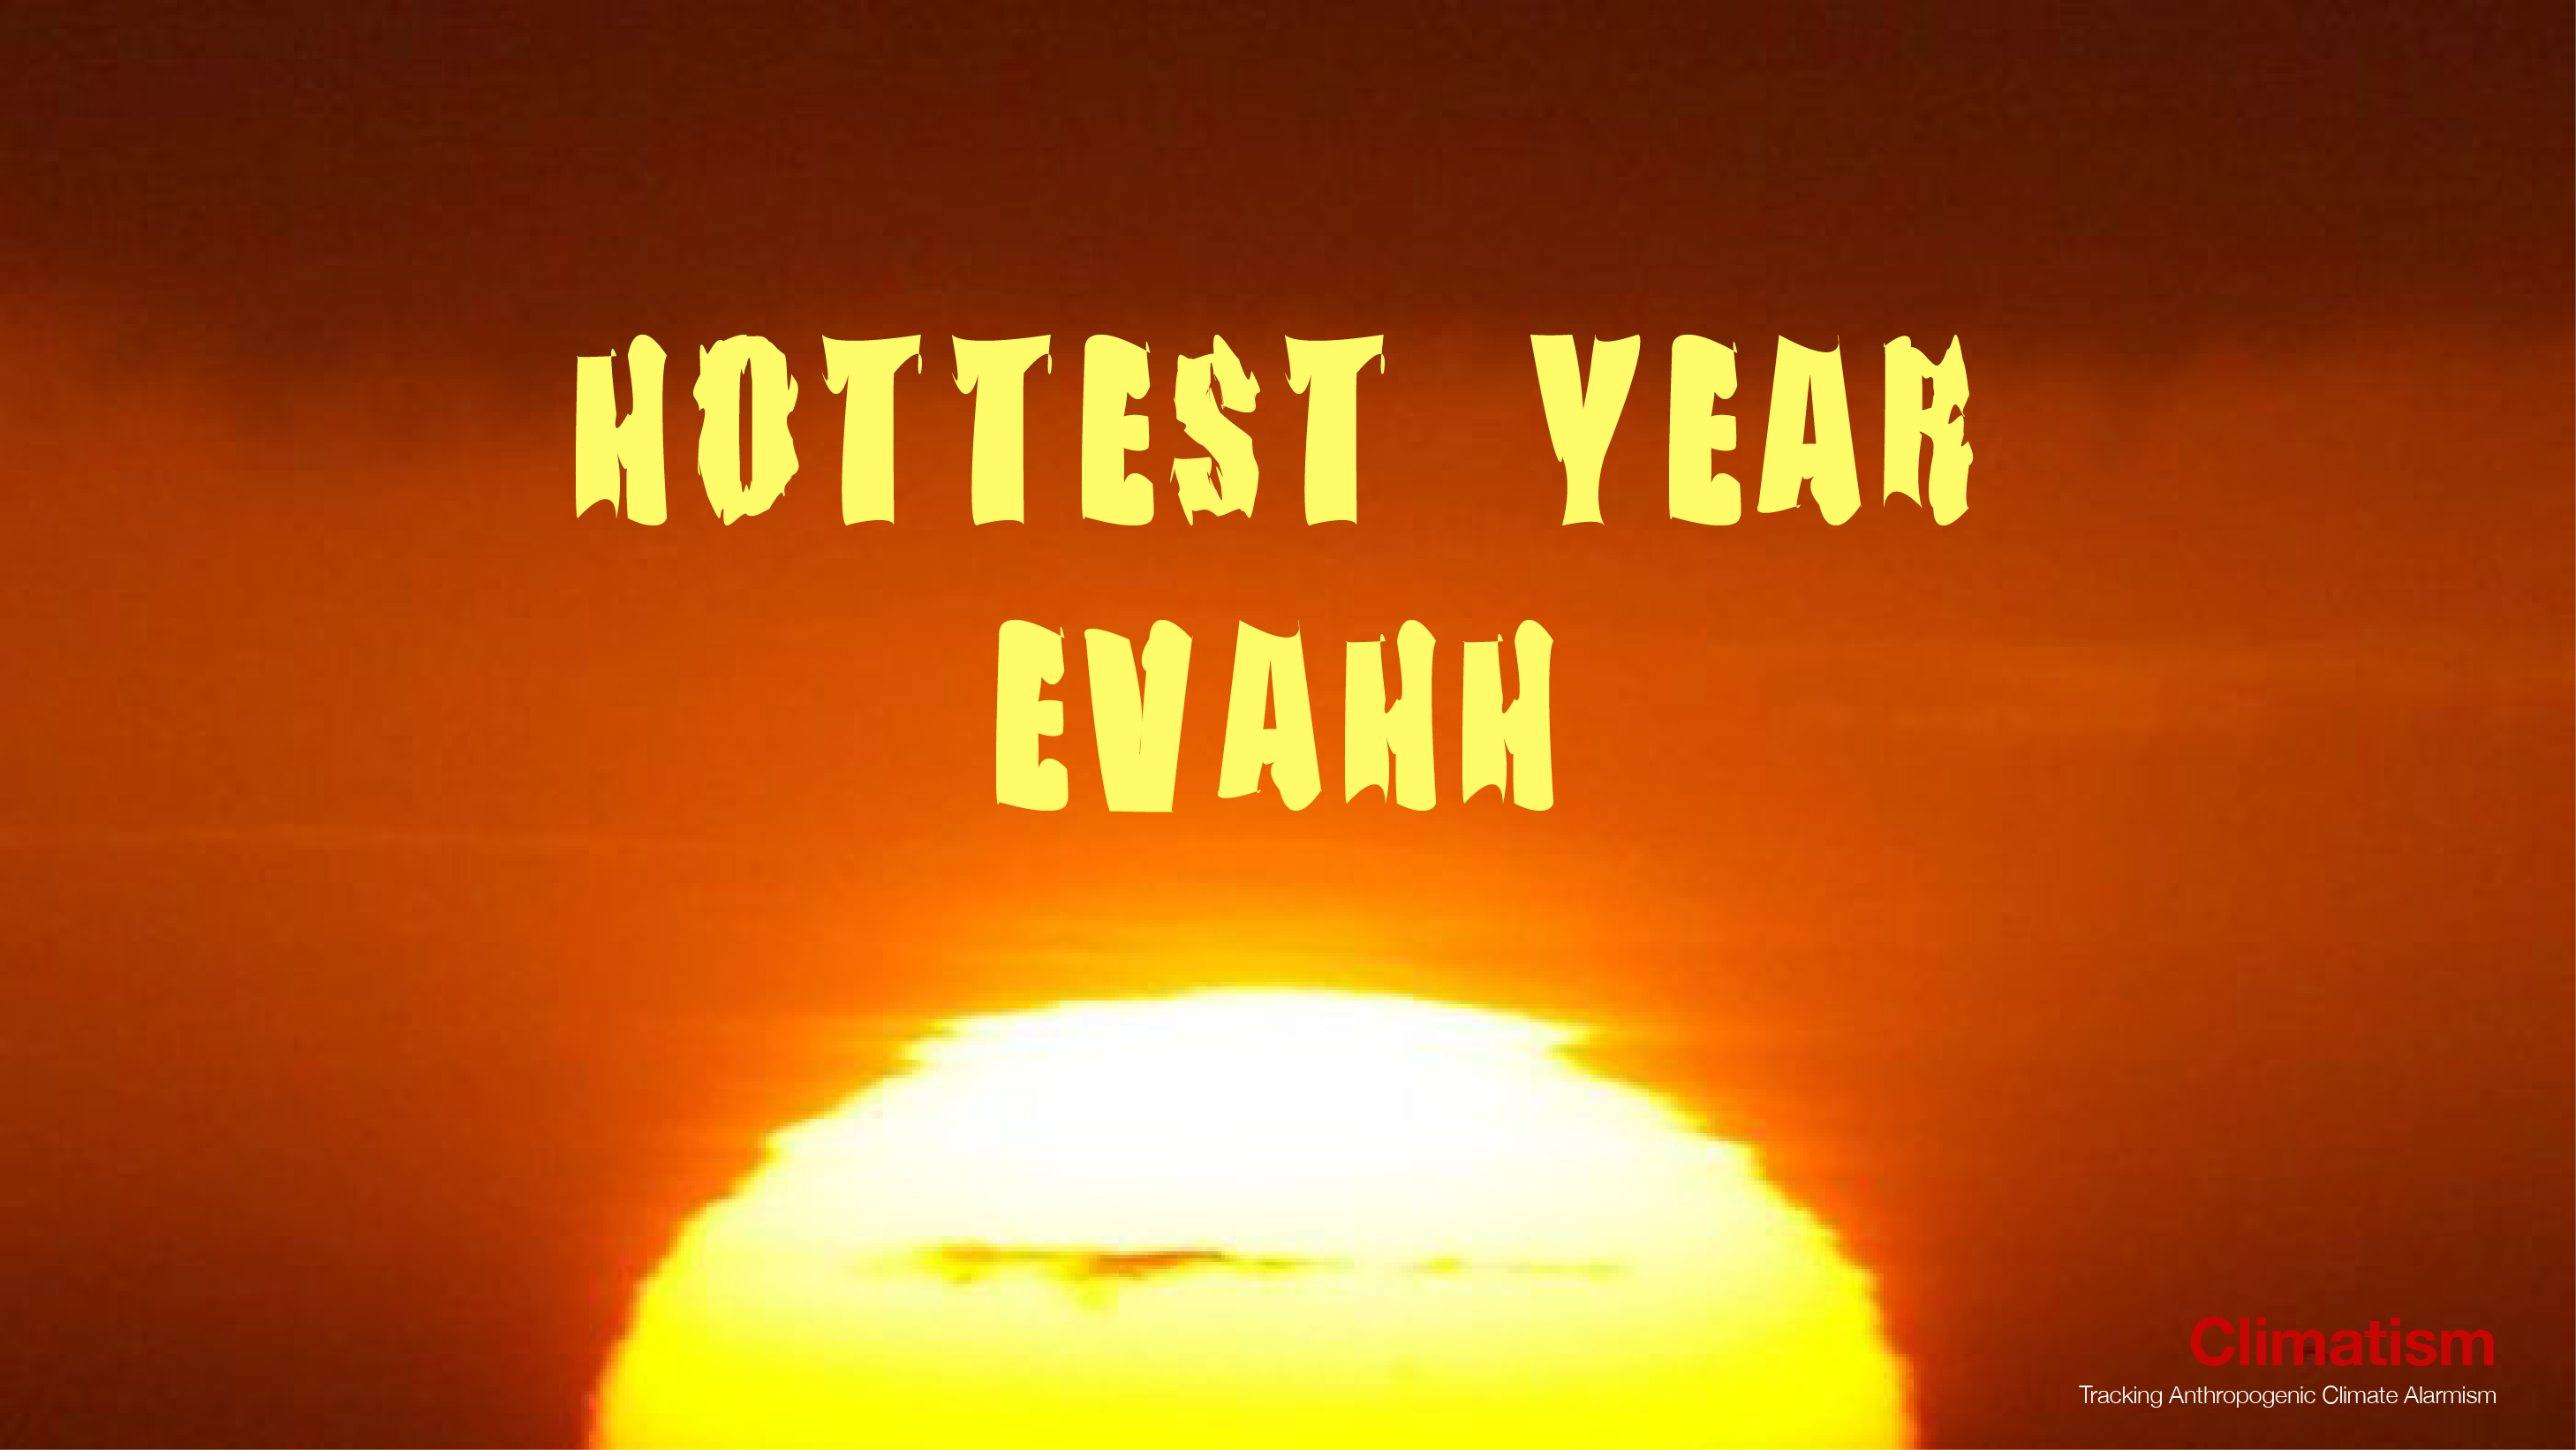 HOTTEST YEAR EVAHH - CLIMATISM.png